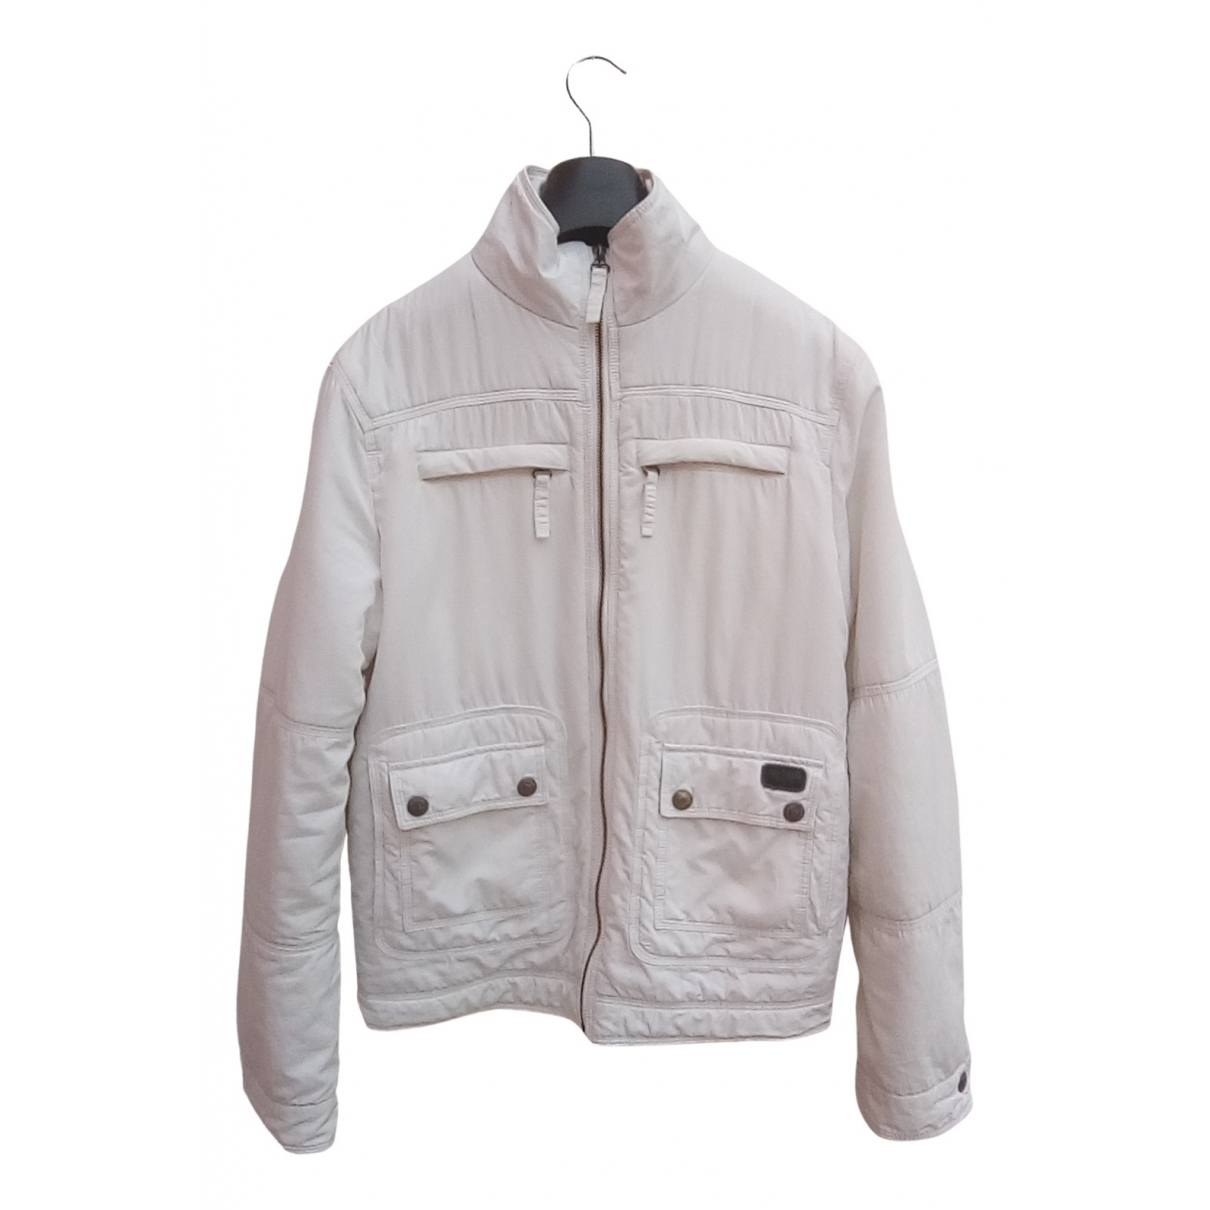 Moschino Cheap And Chic \N Jacke in  Weiss Synthetik